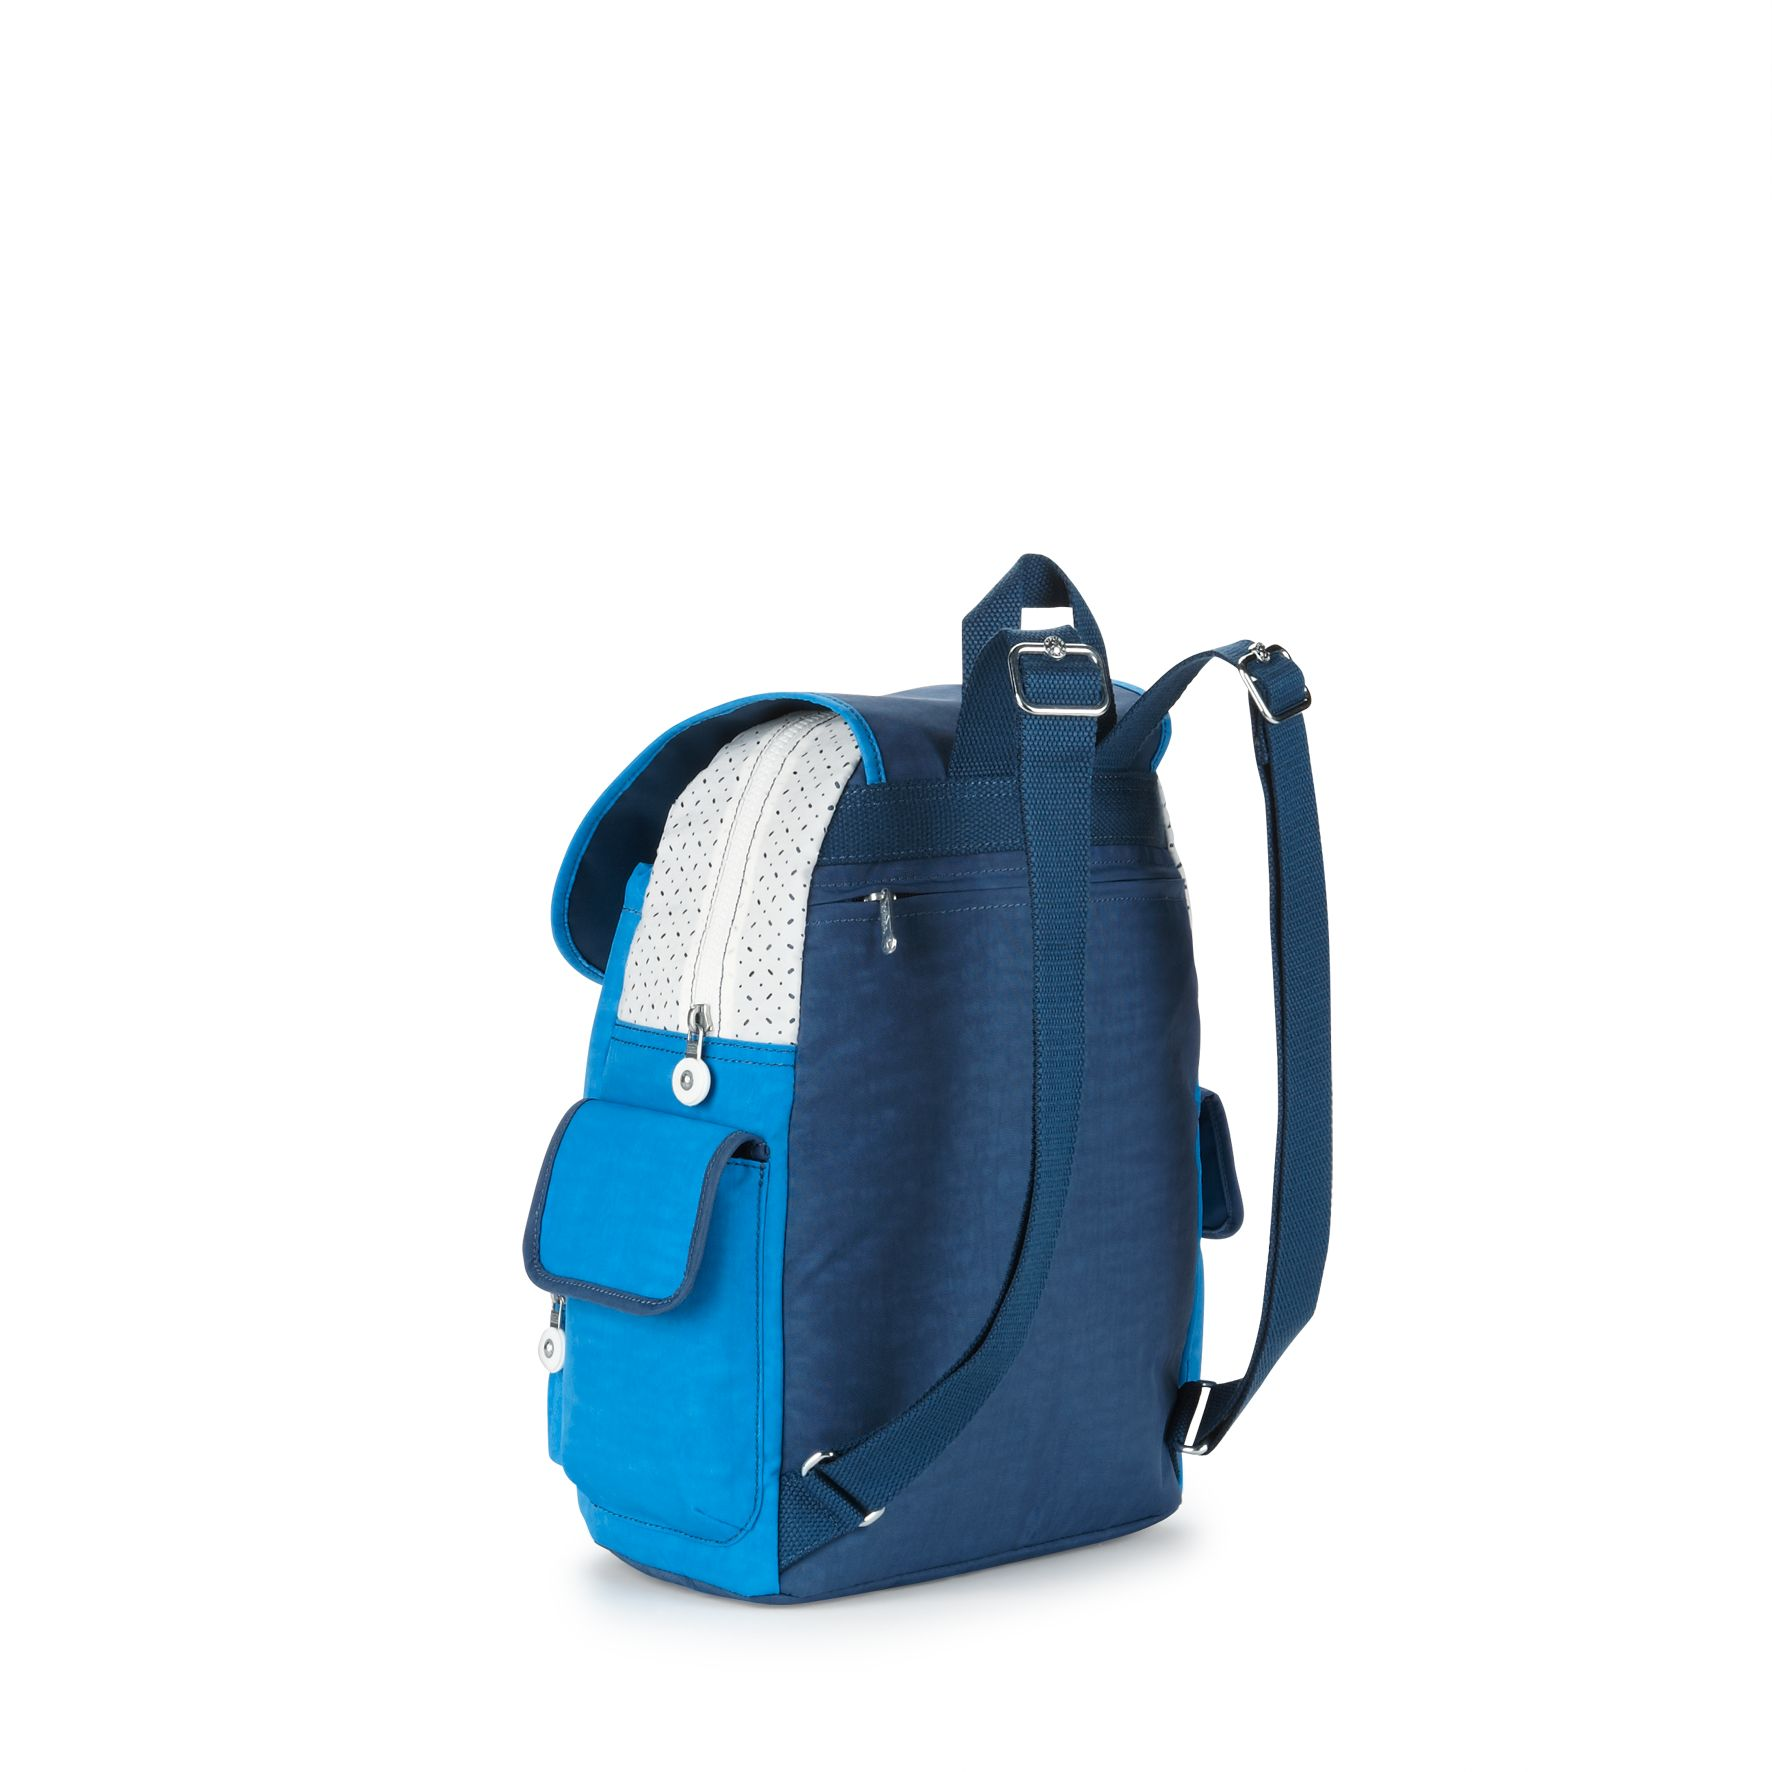 City pack b backpack